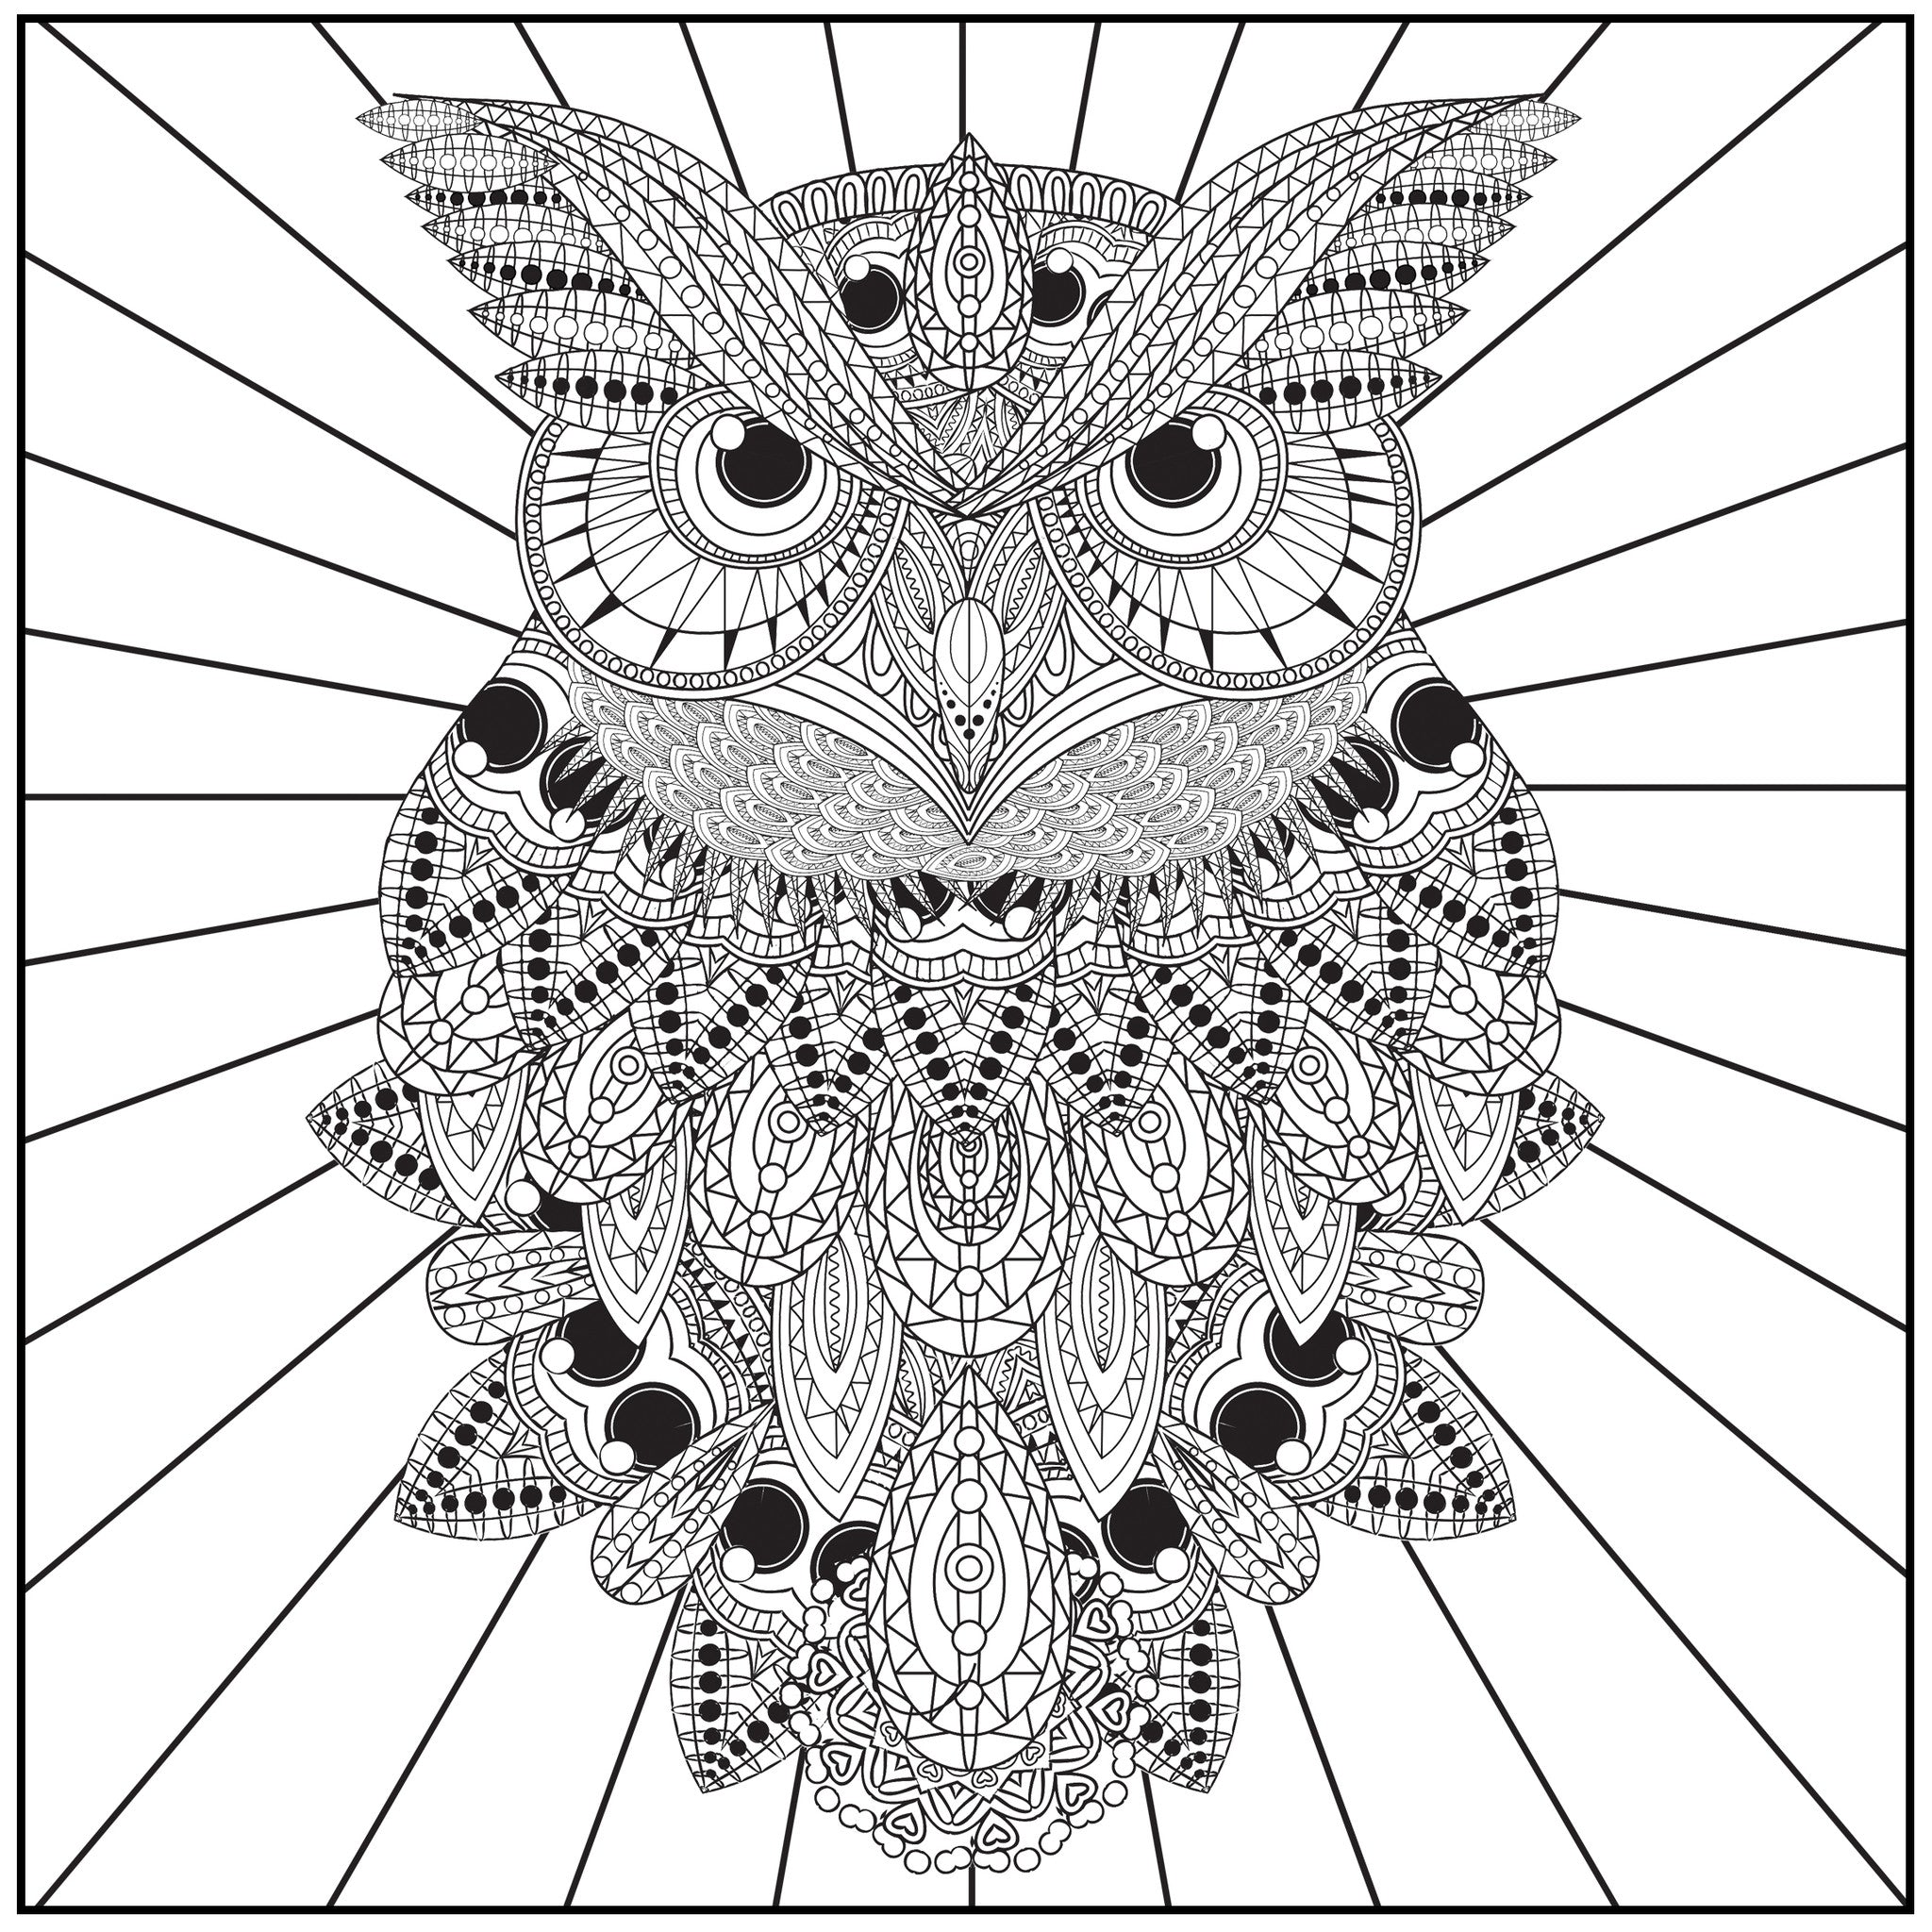 Coloring book color of art -  Color With Music Owls Of The Night Adult Coloring Book Blank Page